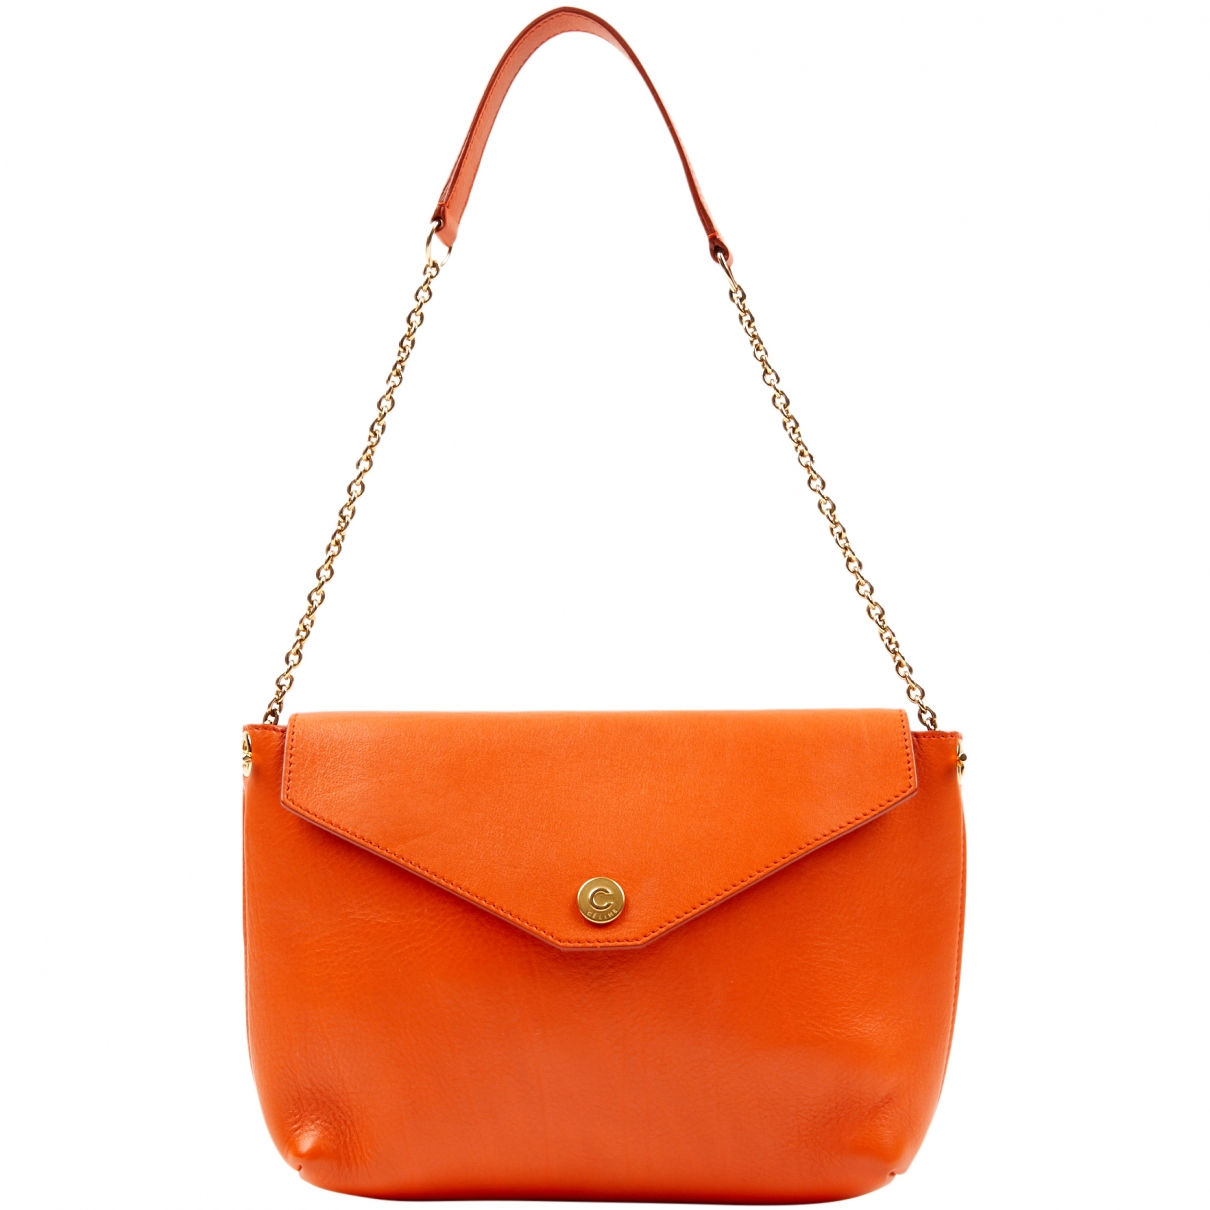 Celine Pocket Handtasche in  Orange Leder